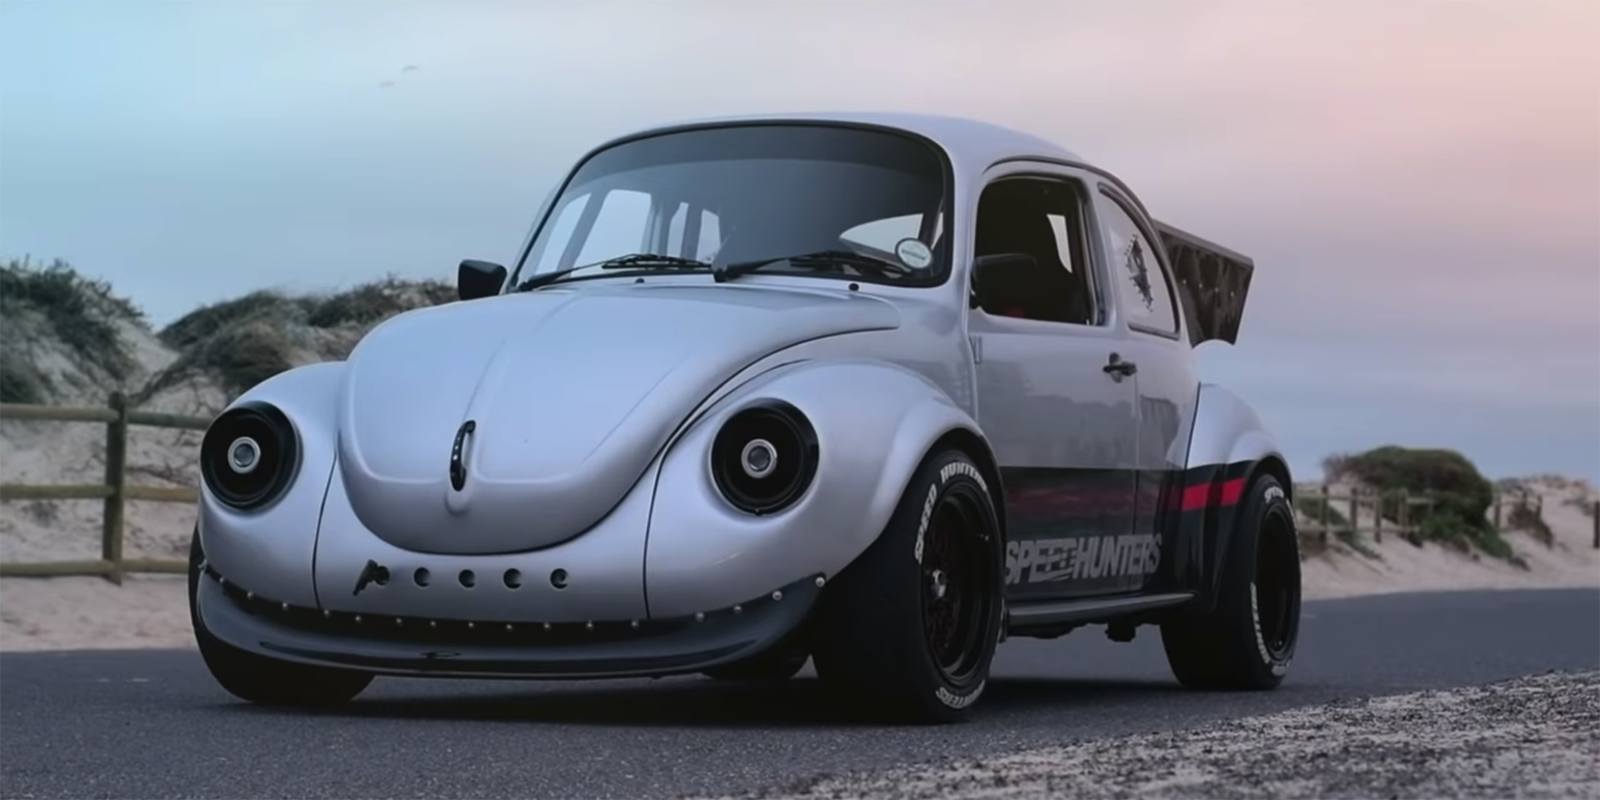 Watch: A Subaru Engine Truly Makes this Beetle Super - VWVortex